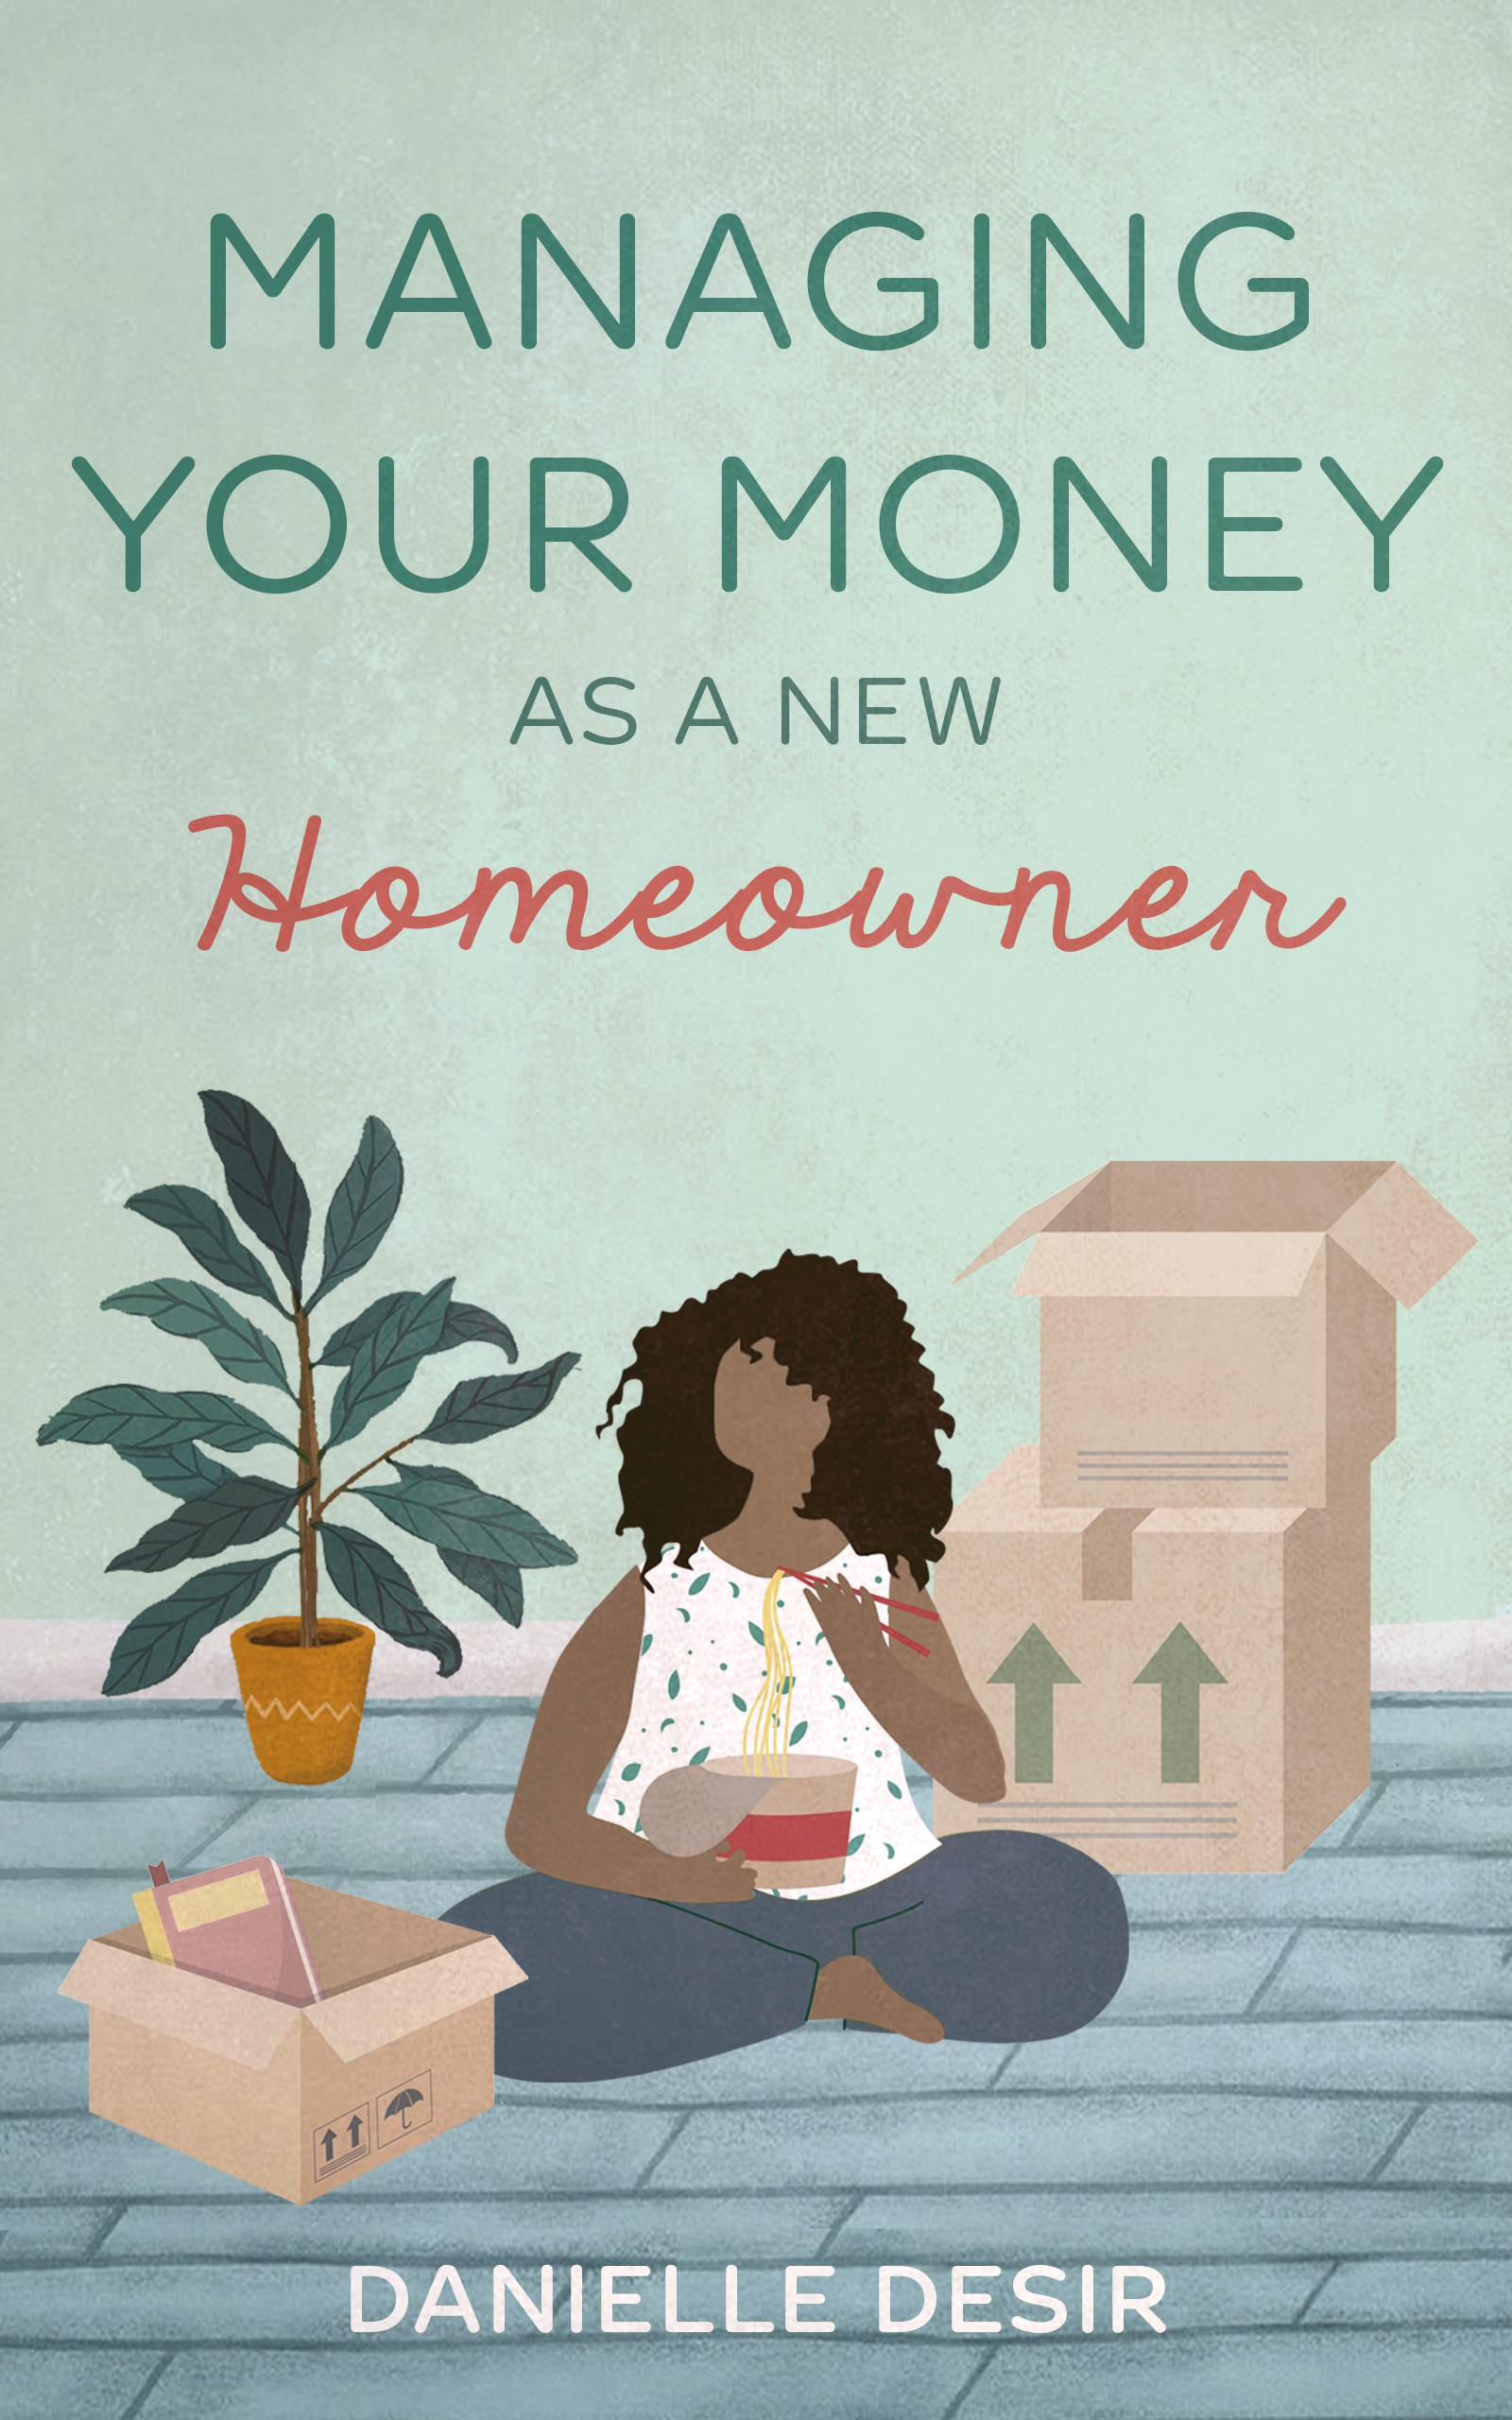 I Need A Fun Design For A Personal Finance Book About Homeownership